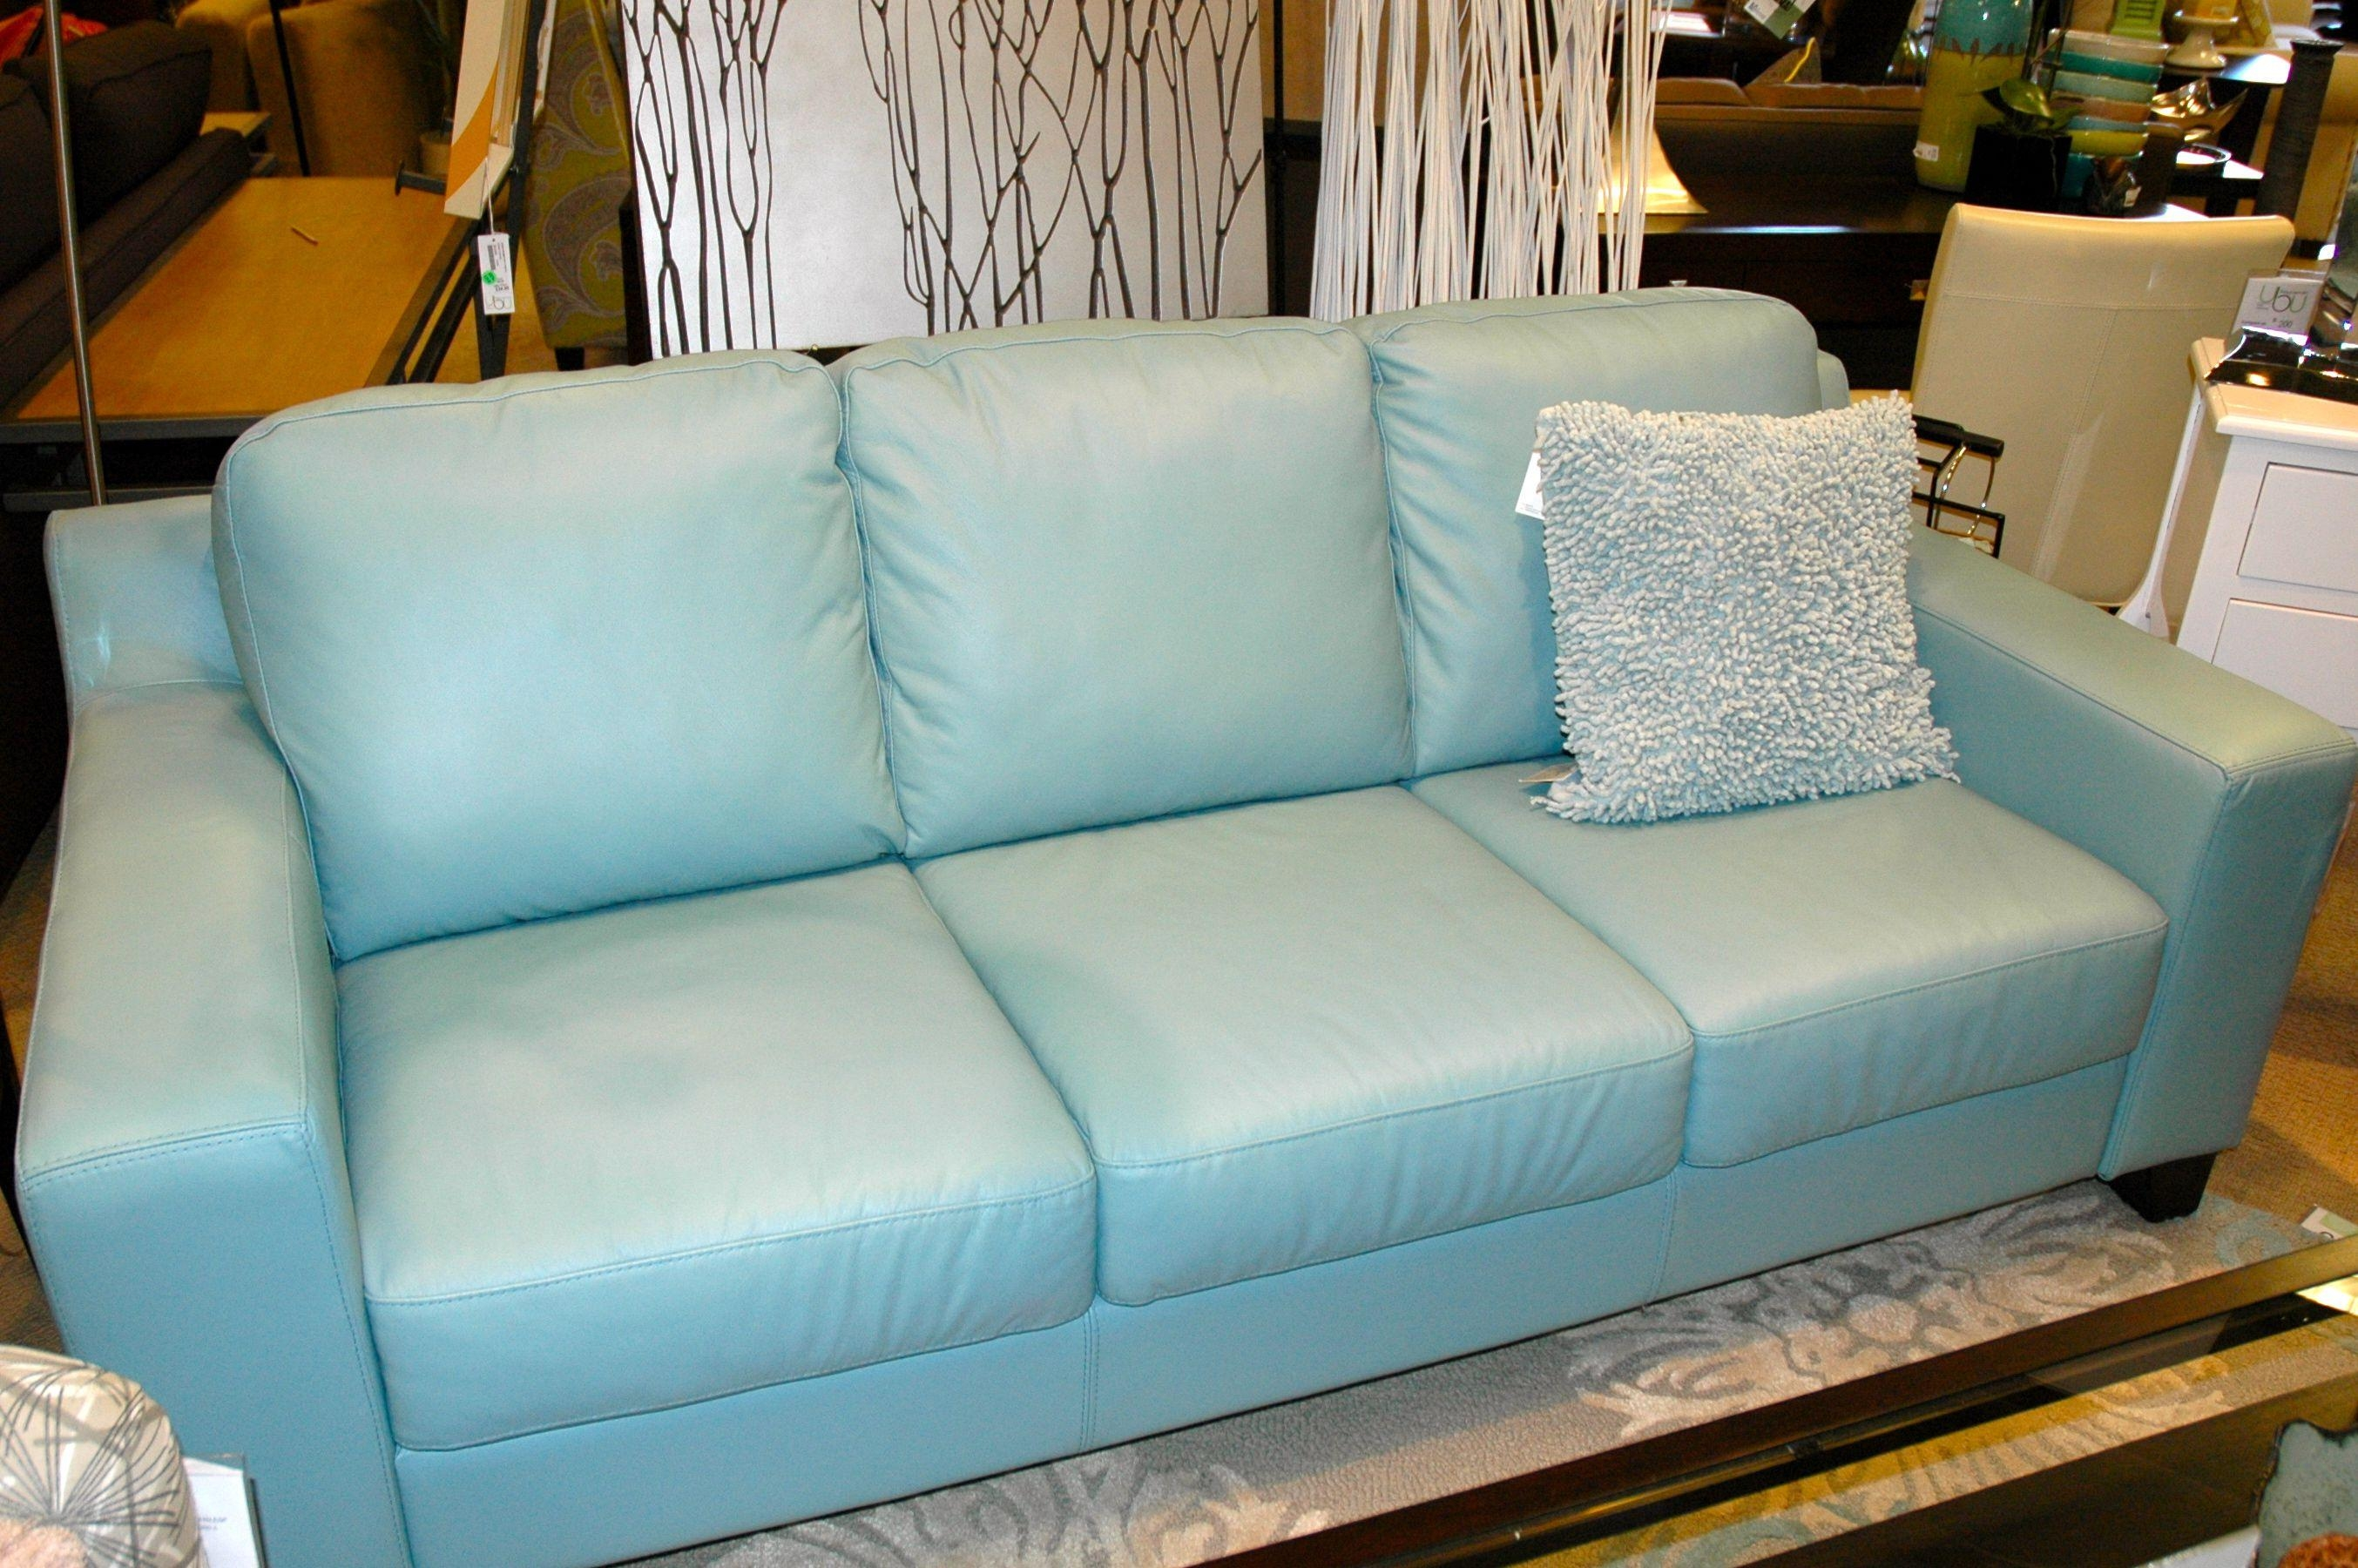 25 Best Ideas About Light Blue Sofa On Pinterest At Light Blue Inside Sky Blue Sofas (View 7 of 20)